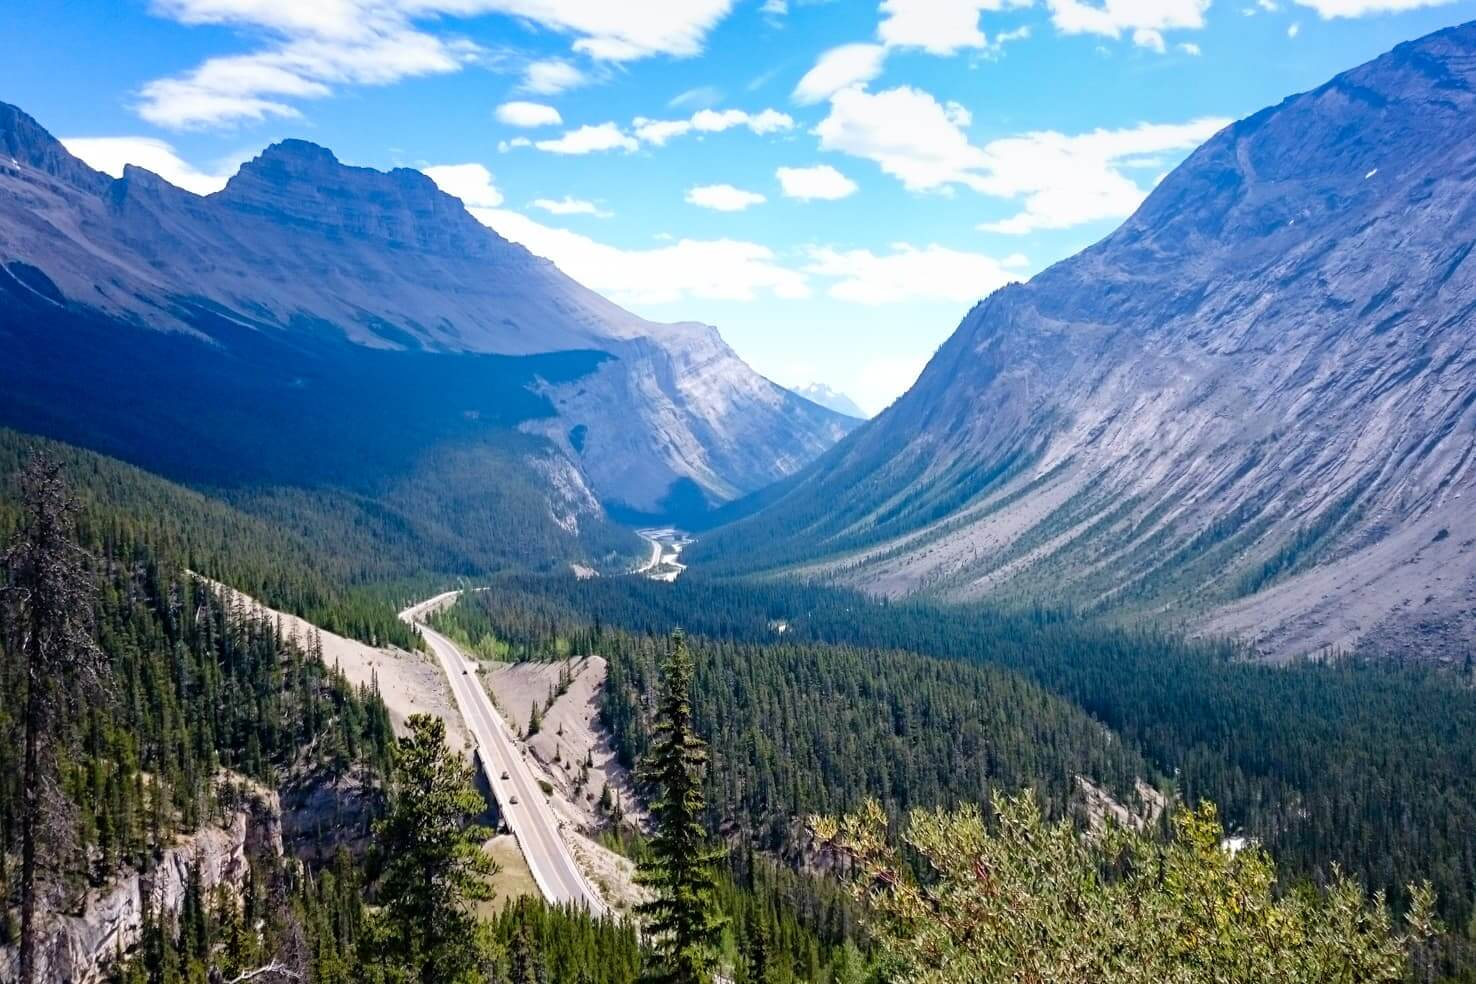 Western Canada Road Trip from Calgary to Vancouver - Icefields Parkway scenic drive from Lake Louise to Jasper